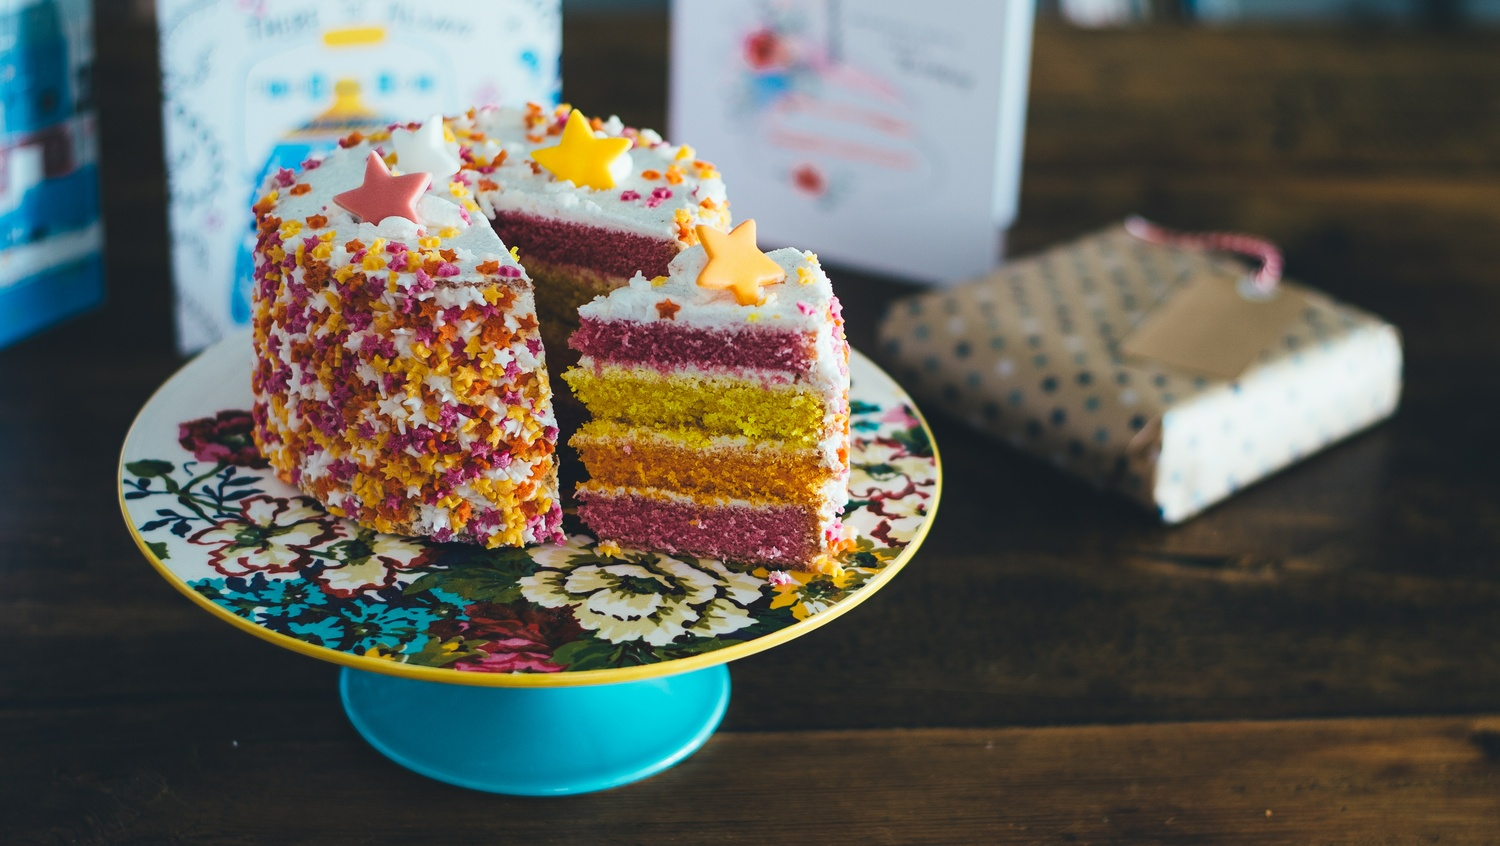 A birthday cake with rainbow sponge and stars on top, with a slice cut out and sat at an angle on the plate - Möbel Preiss